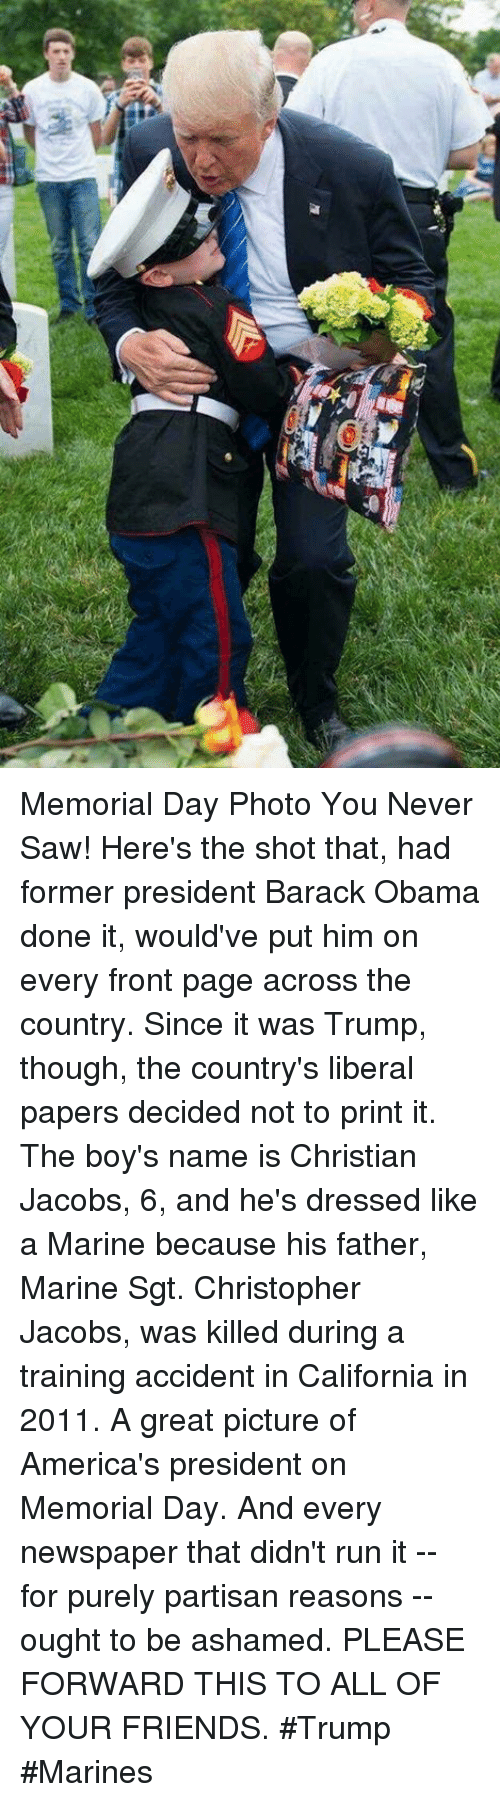 Friends, Memes, and Obama: Memorial Day Photo You Never Saw!   Here's the shot that, had former president Barack Obama  done it, would've put him on every front page across the  country. Since it was Trump, though, the country's liberal  papers decided not to print it.   The boy's name is Christian Jacobs, 6, and he's dressed like  a Marine because his father, Marine Sgt. Christopher Jacobs, was killed during a training accident in California in 2011.  A great picture of America's president on Memorial Day. And  every newspaper that didn't run it -- for purely partisan  reasons -- ought to be ashamed.  PLEASE FORWARD THIS TO ALL OF YOUR FRIENDS.  #Trump #Marines